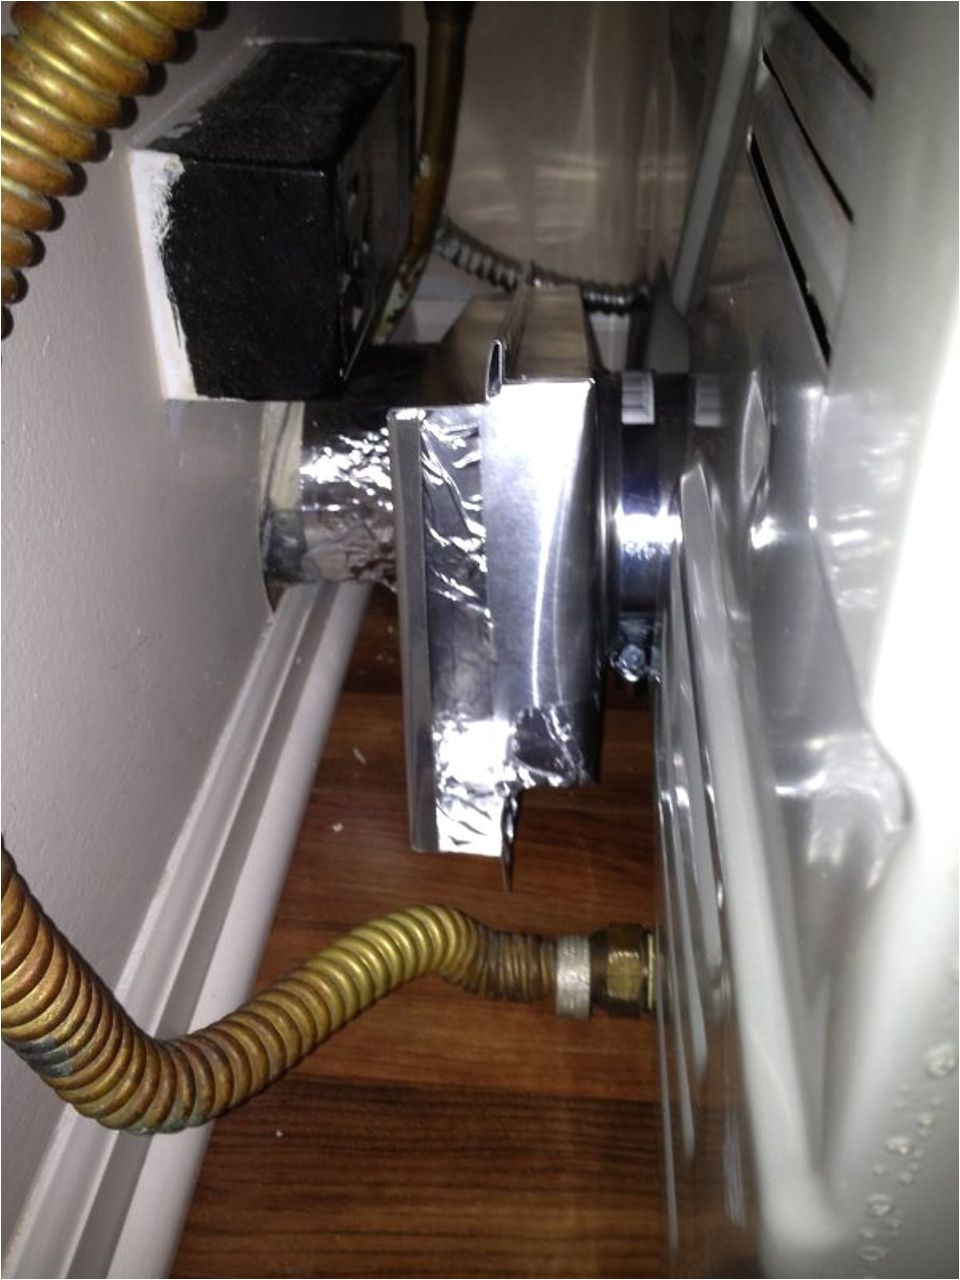 dryer hooked up 56a4a28b3df78cf772835c20 jpg